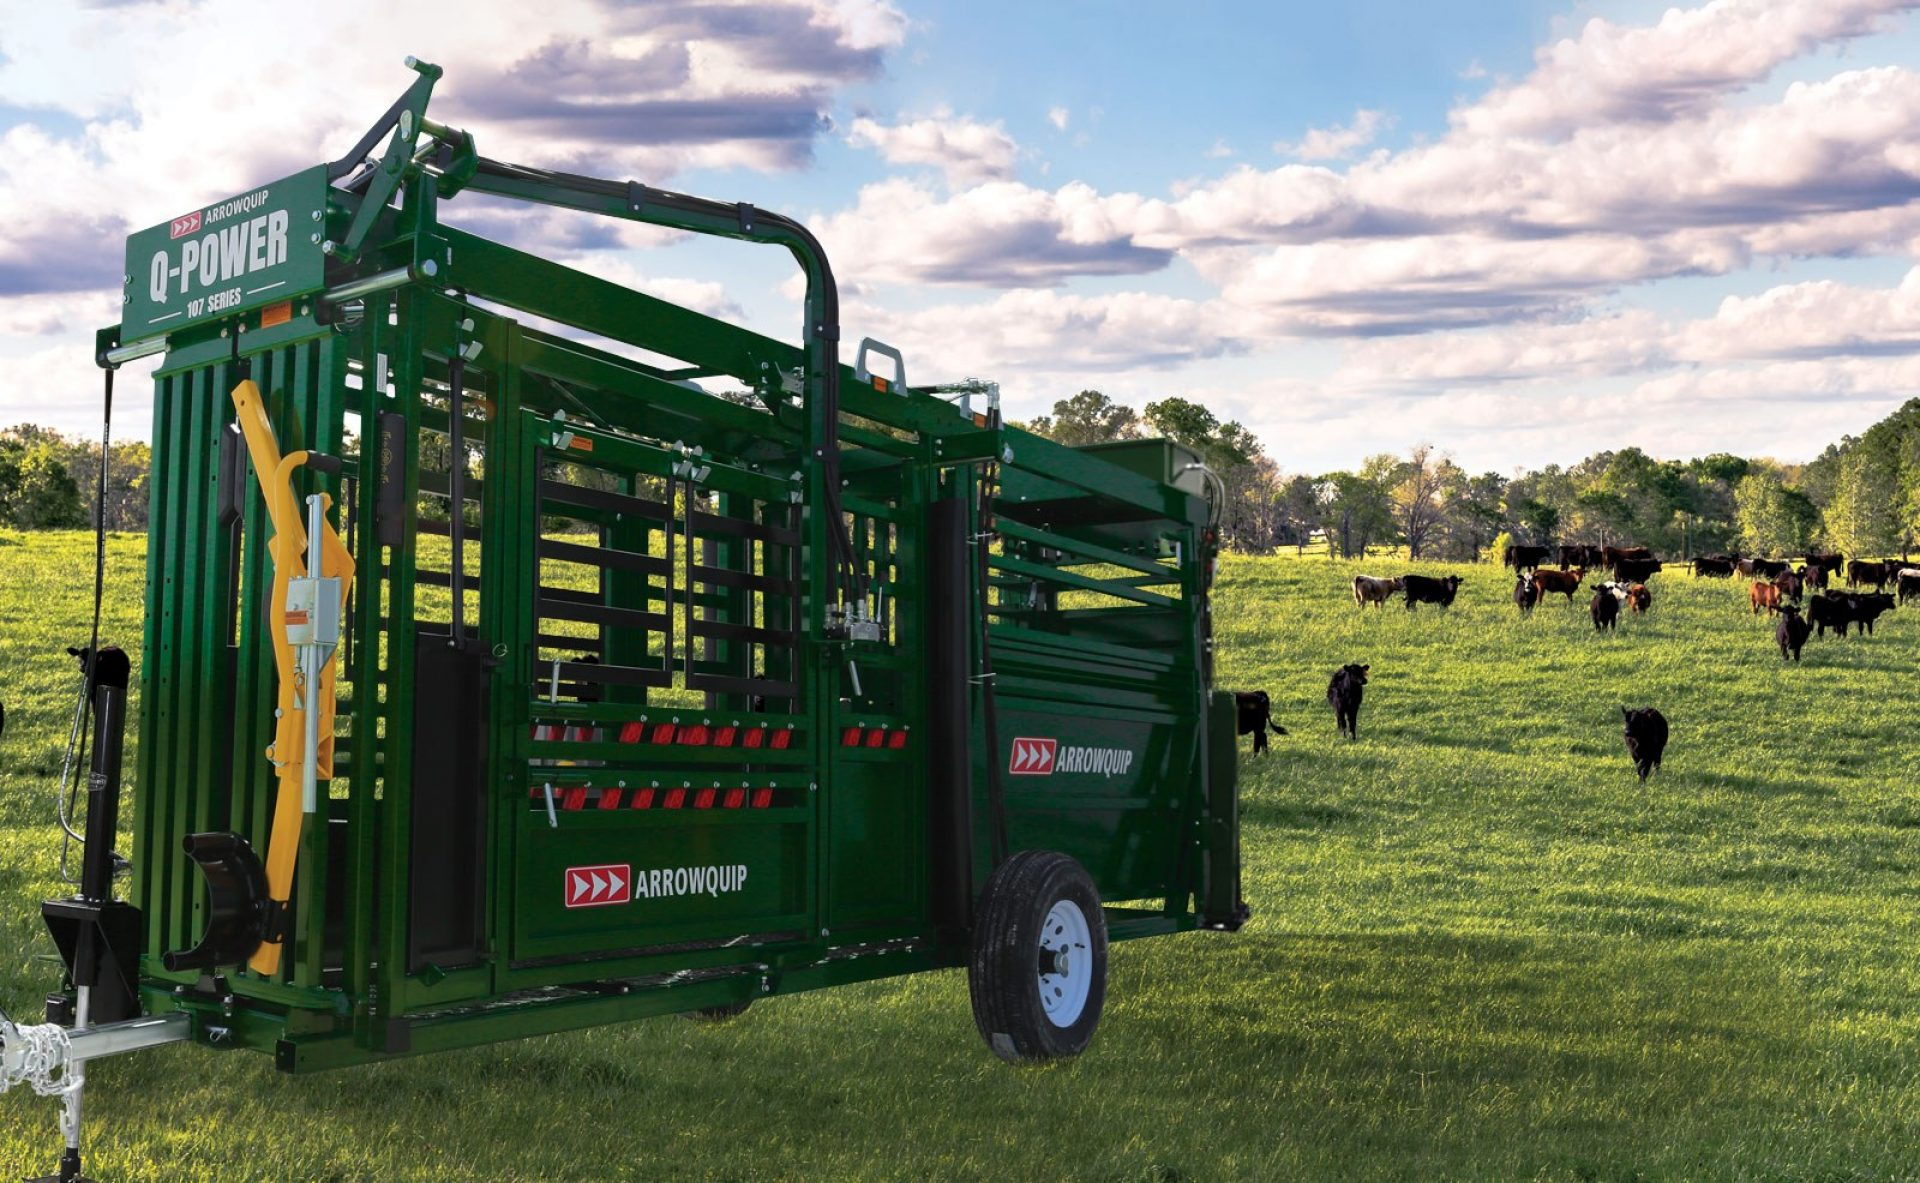 hydraulic mobile crush in a field with cattle